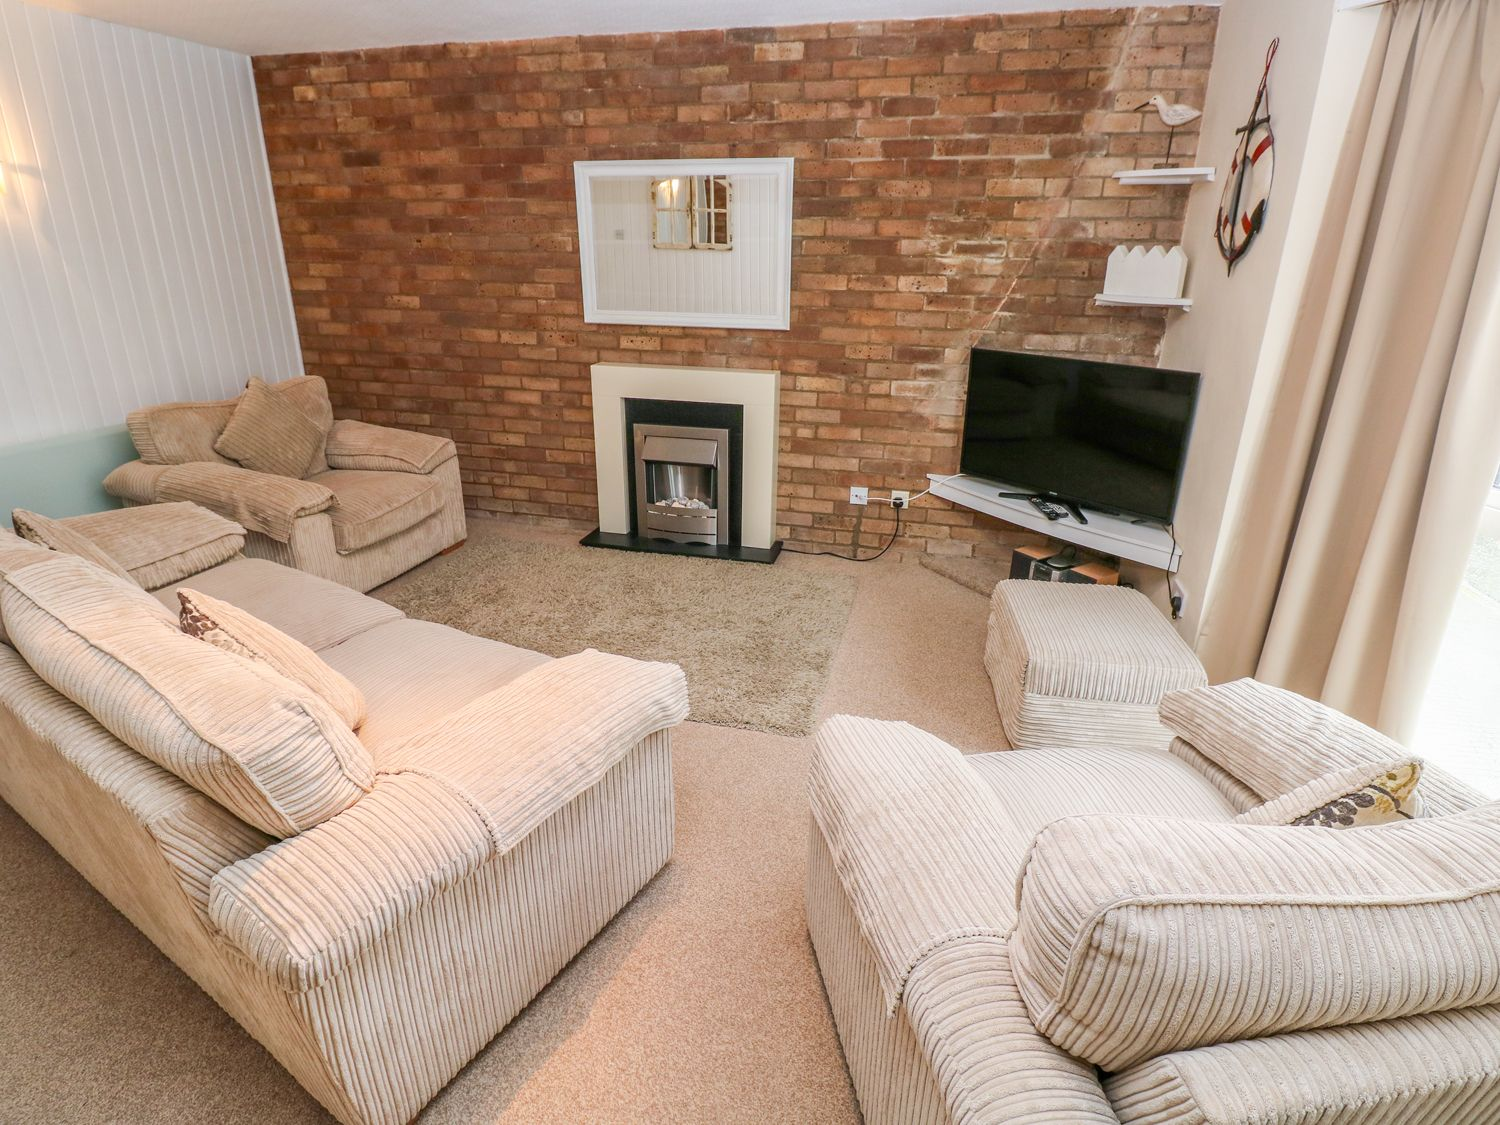 5 St. Marys Court - South Wales - 1004925 - photo 1